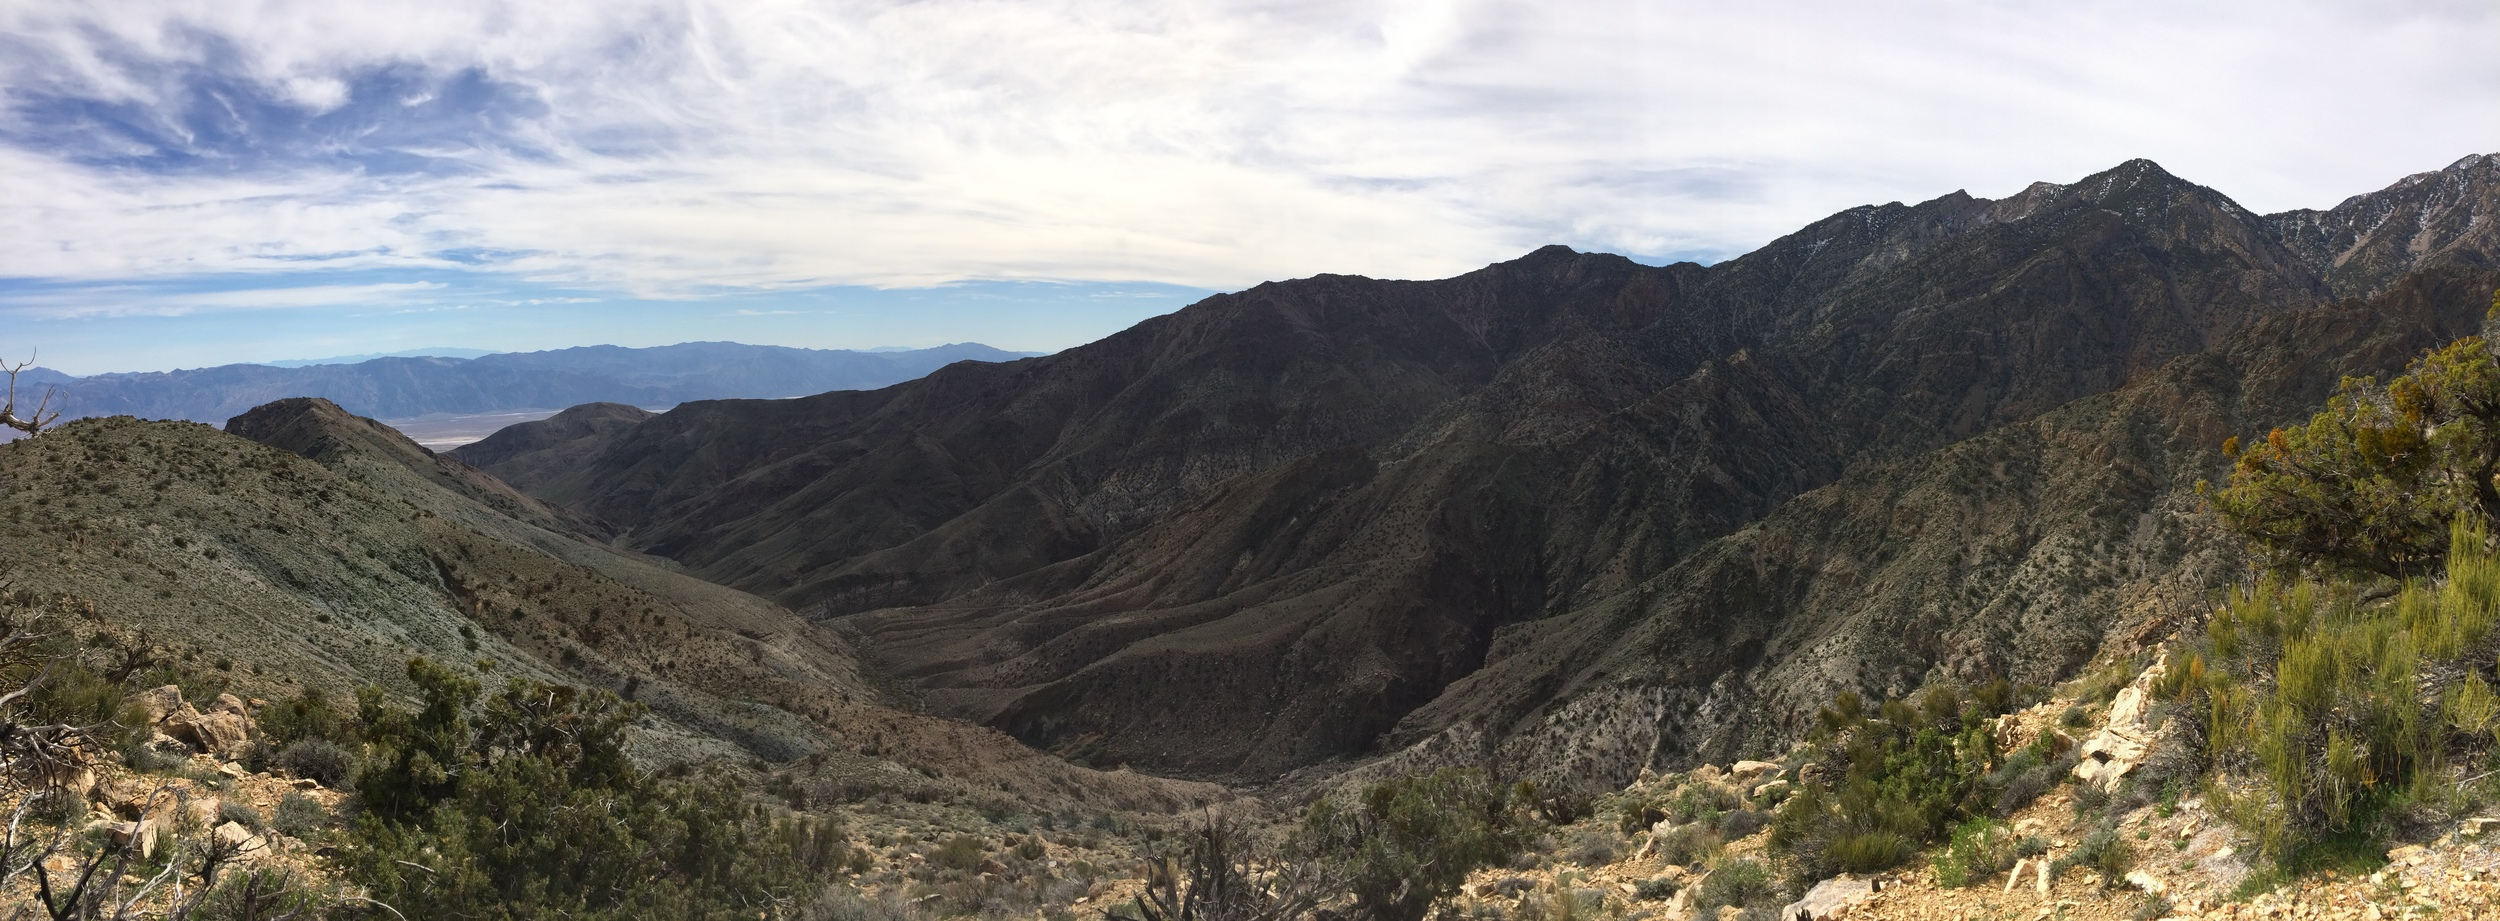 Death Valley, and Hanaupah Canyon, as seen from the Shorty's Well Route, March 2015